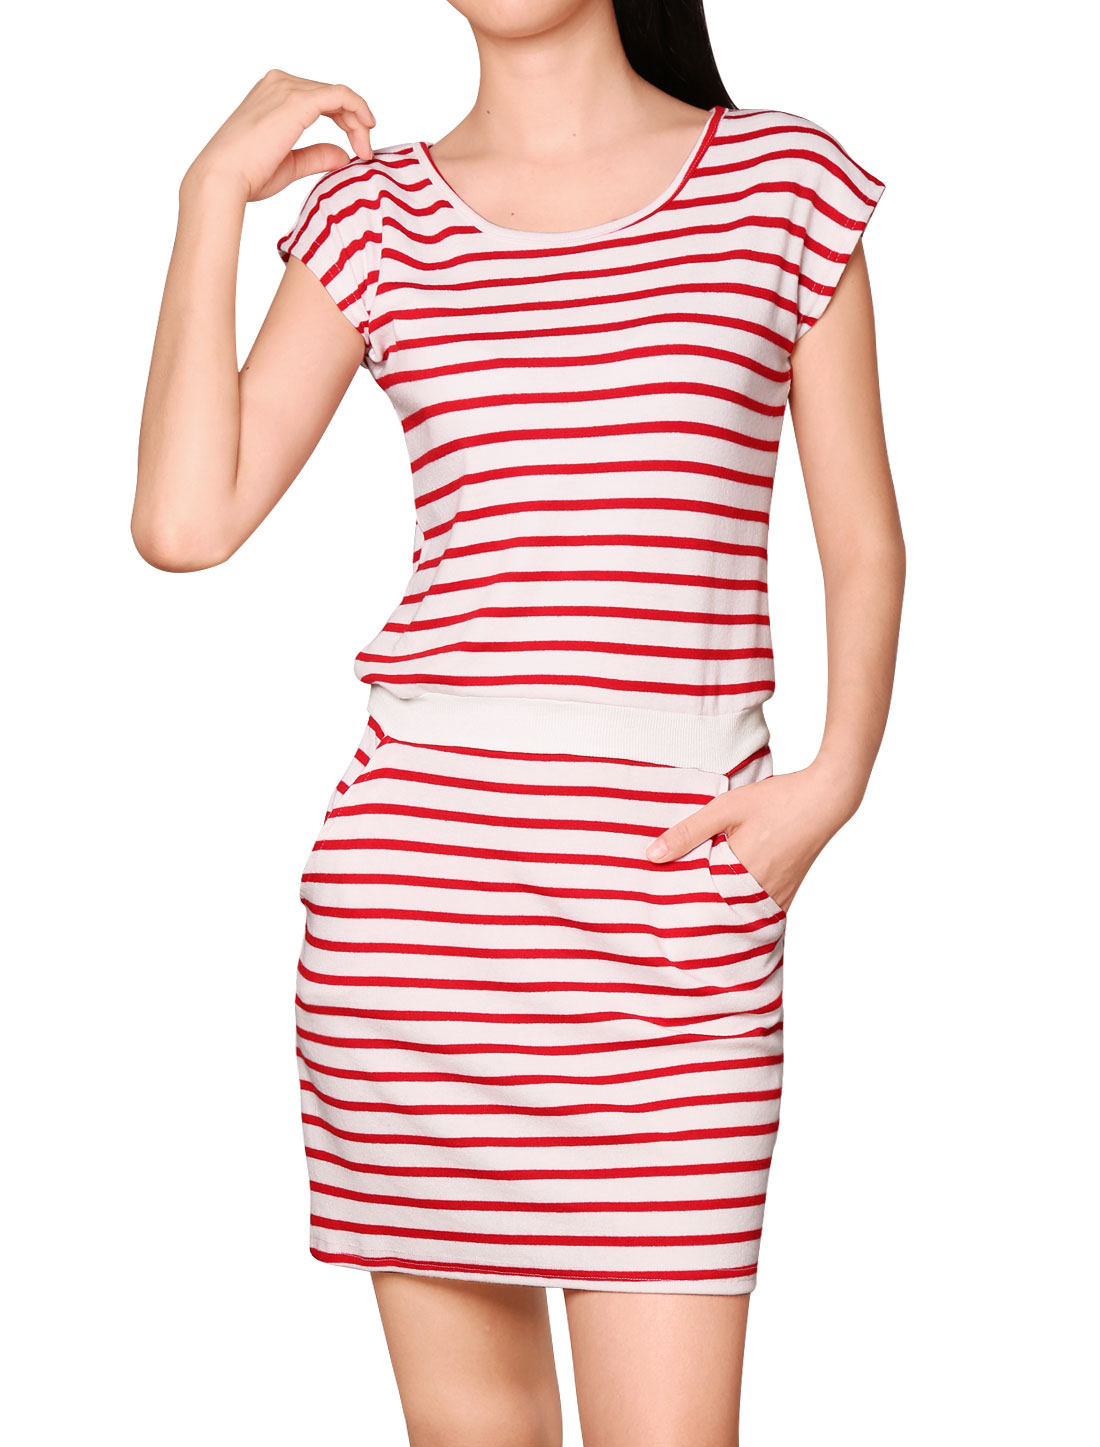 Women Round Neck Sleeveless Stripes Unlined Casual Dresses Red White M